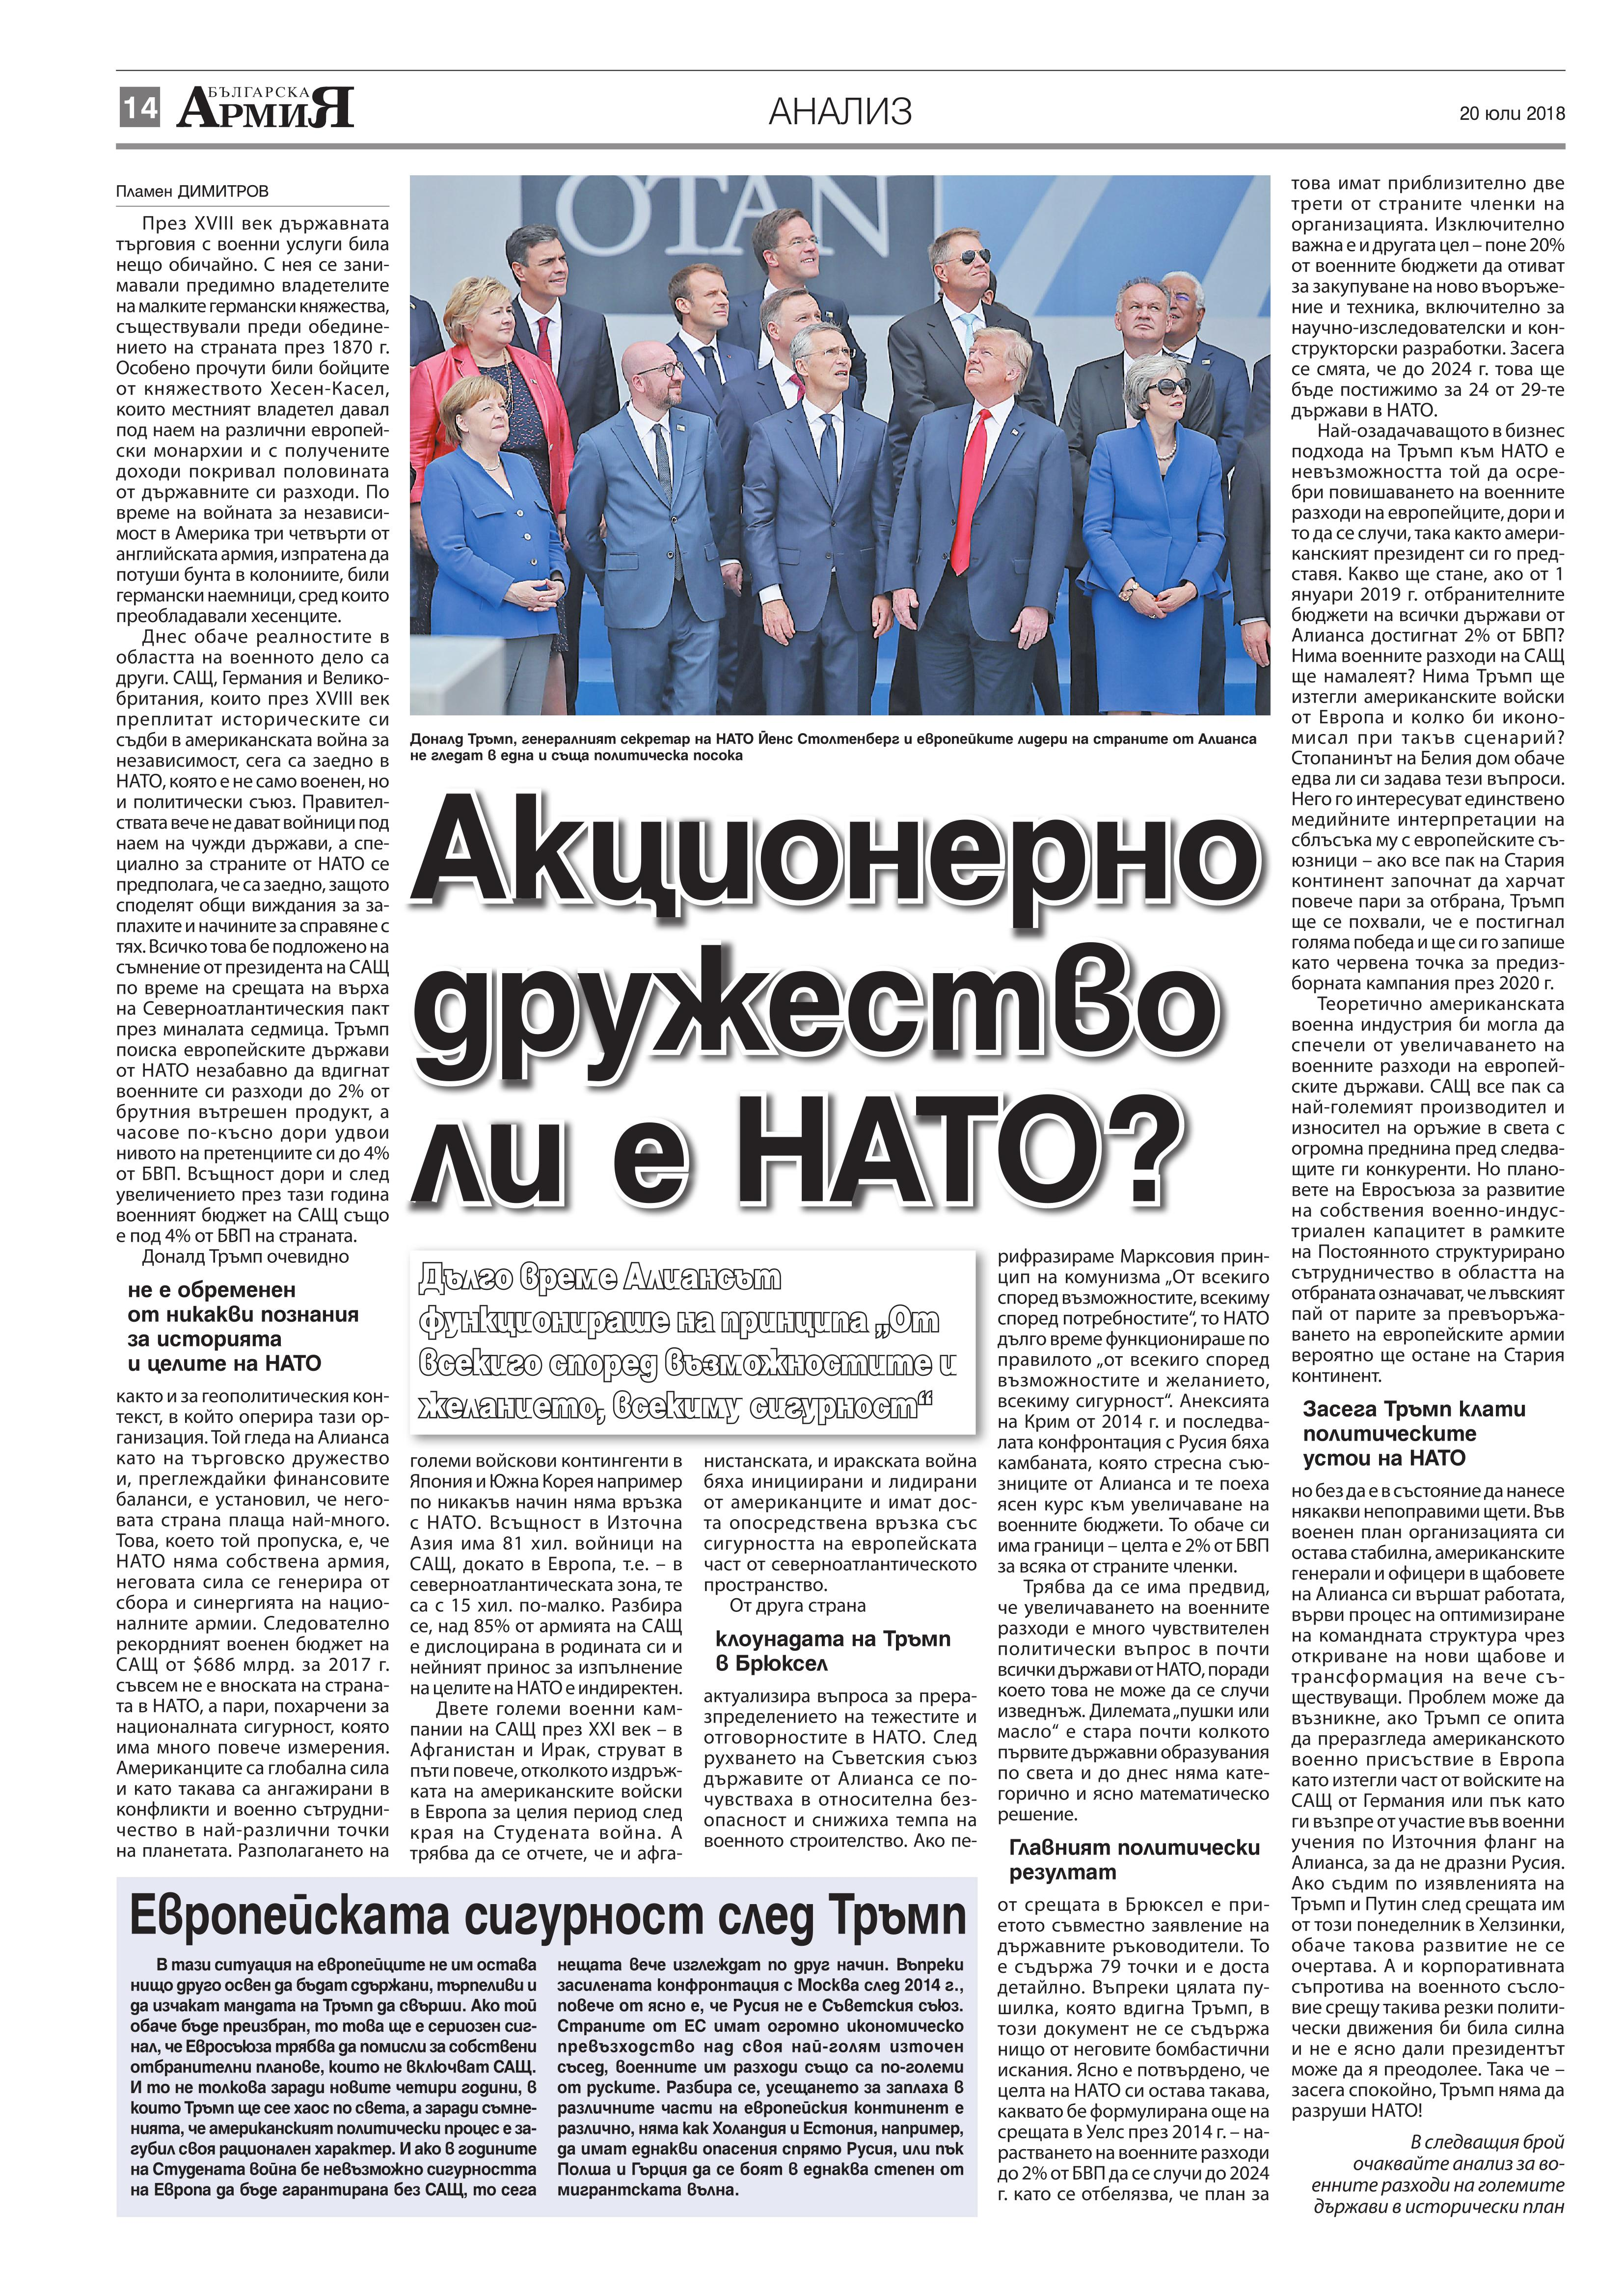 http://armymedia.bg/wp-content/uploads/2015/06/14.page1_-59.jpg